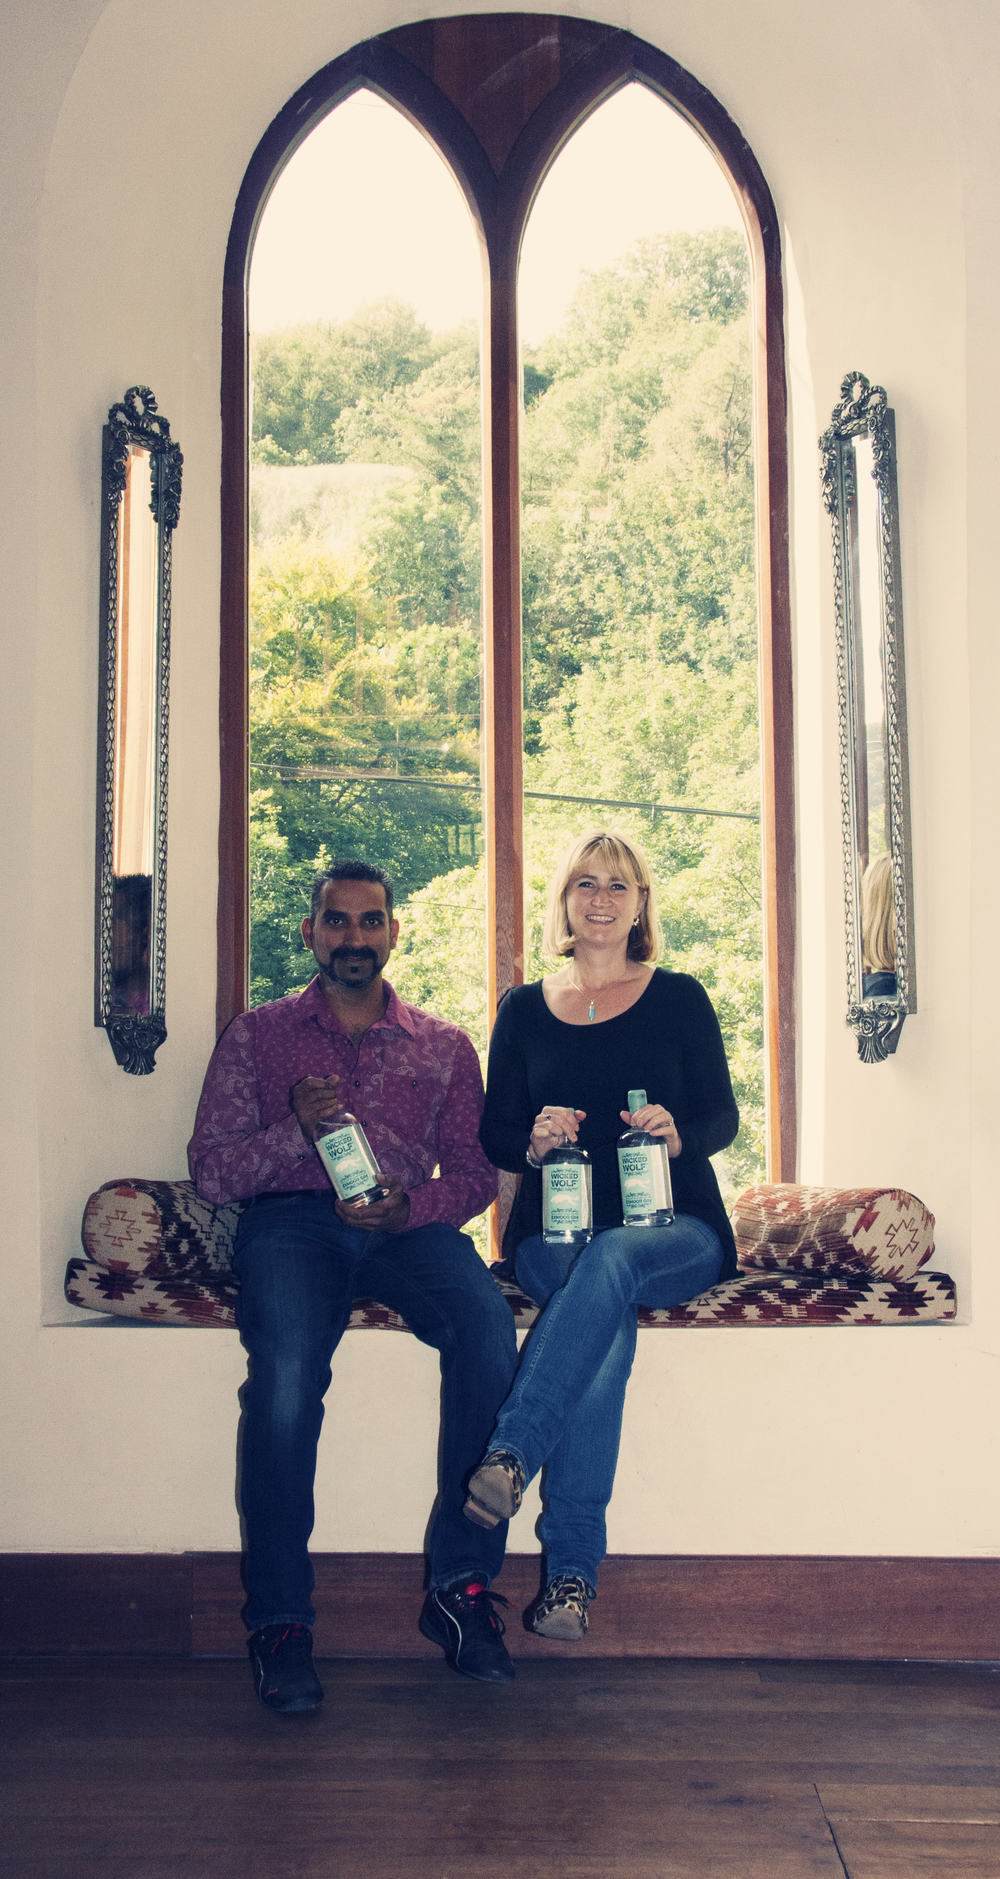 Pat and Julie with their gin, in their now restored Methodist Chapel, built around 1837